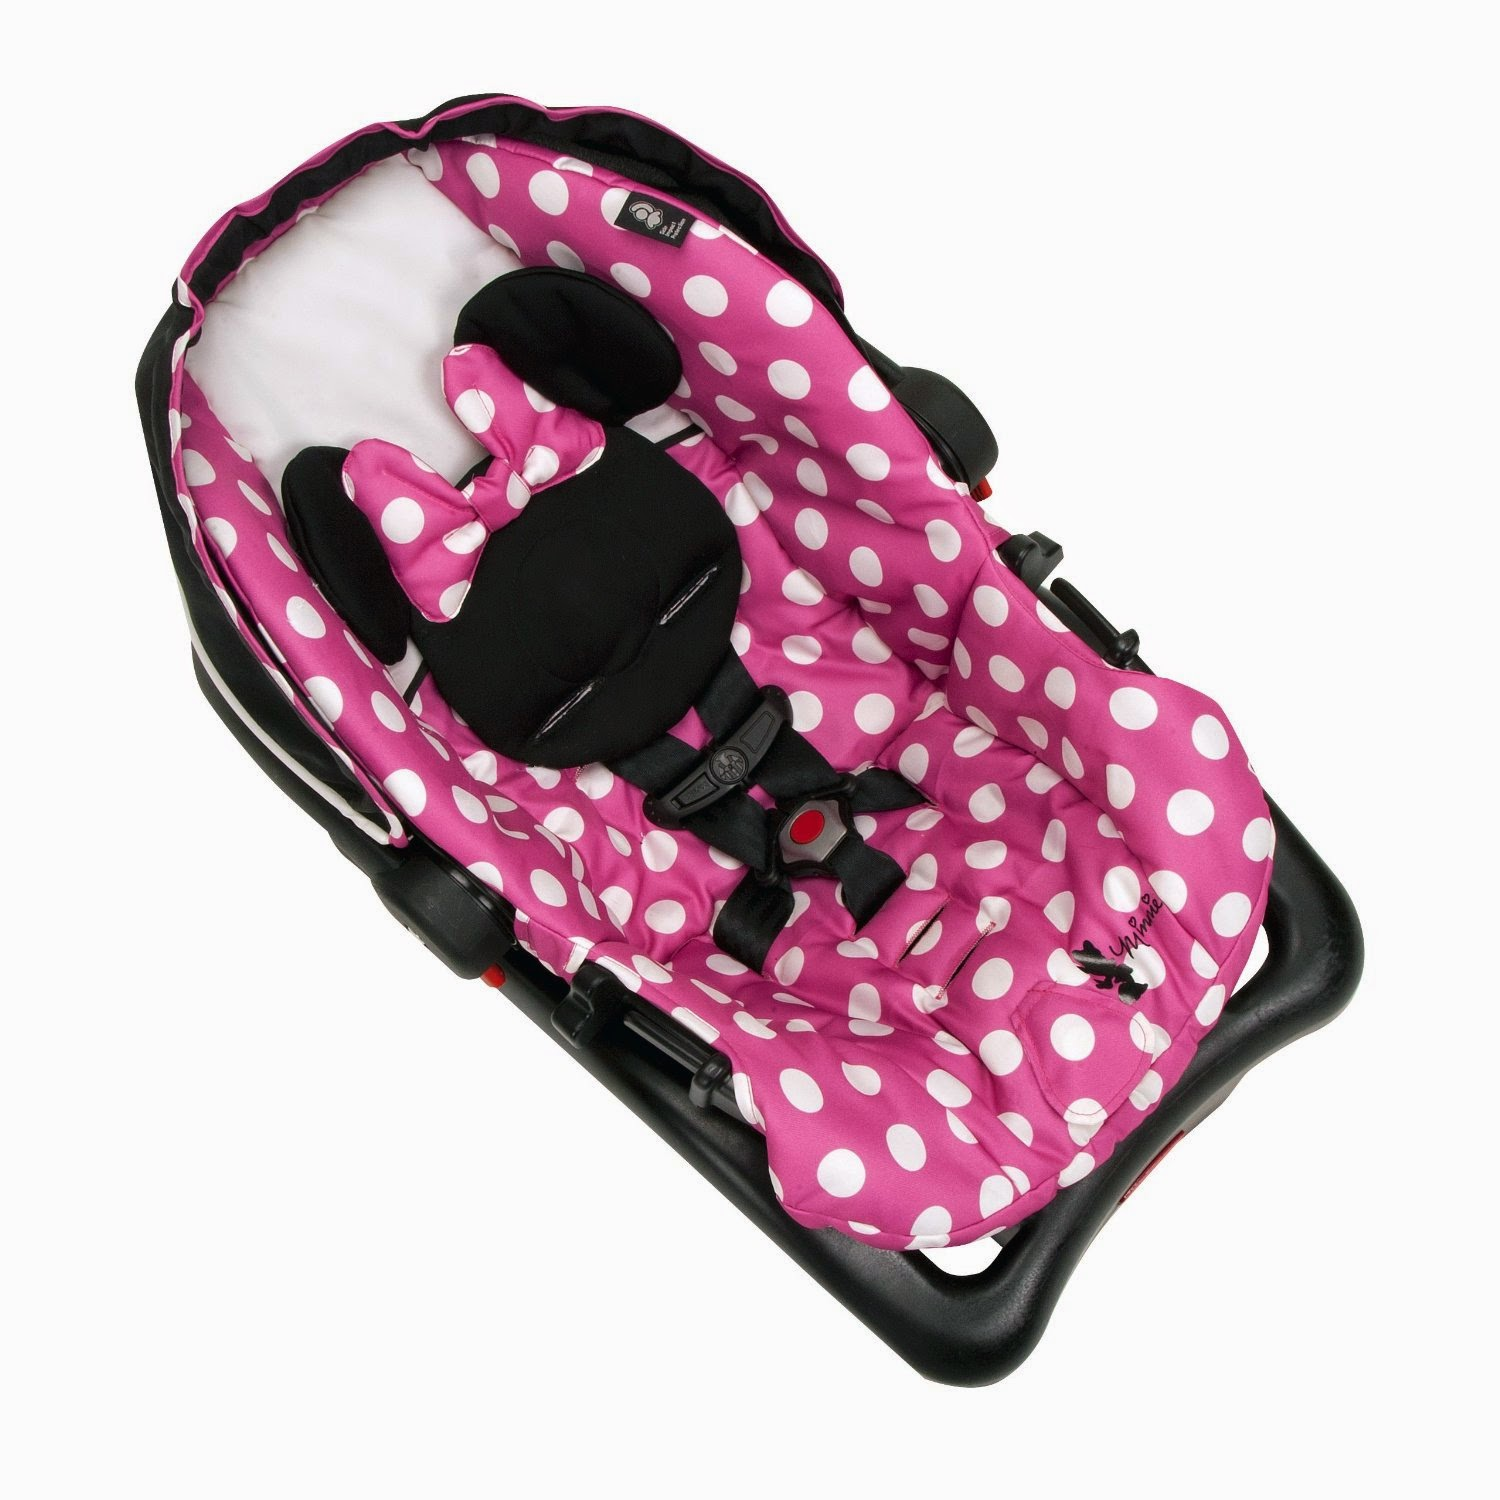 Probably The Cutest Baby Car Seat Ever Minnie Style White Dots On Pink Base Make A Wonderful Contrast To Entire Black Outside Design